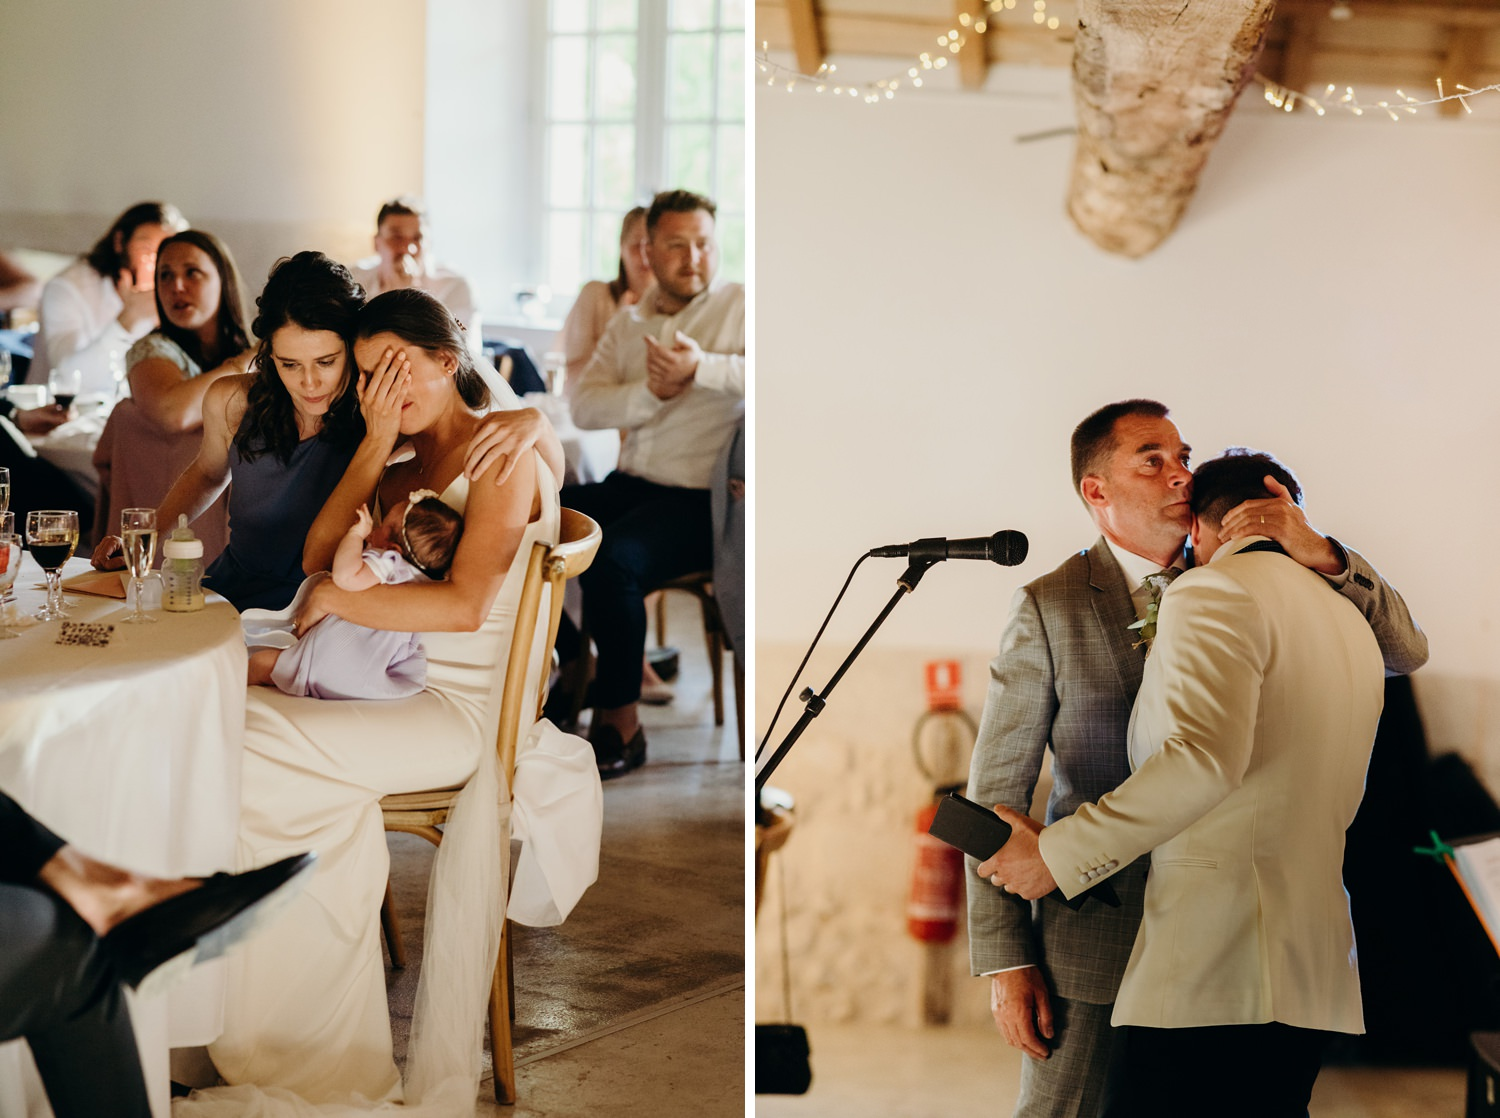 Father hugs son at wedding